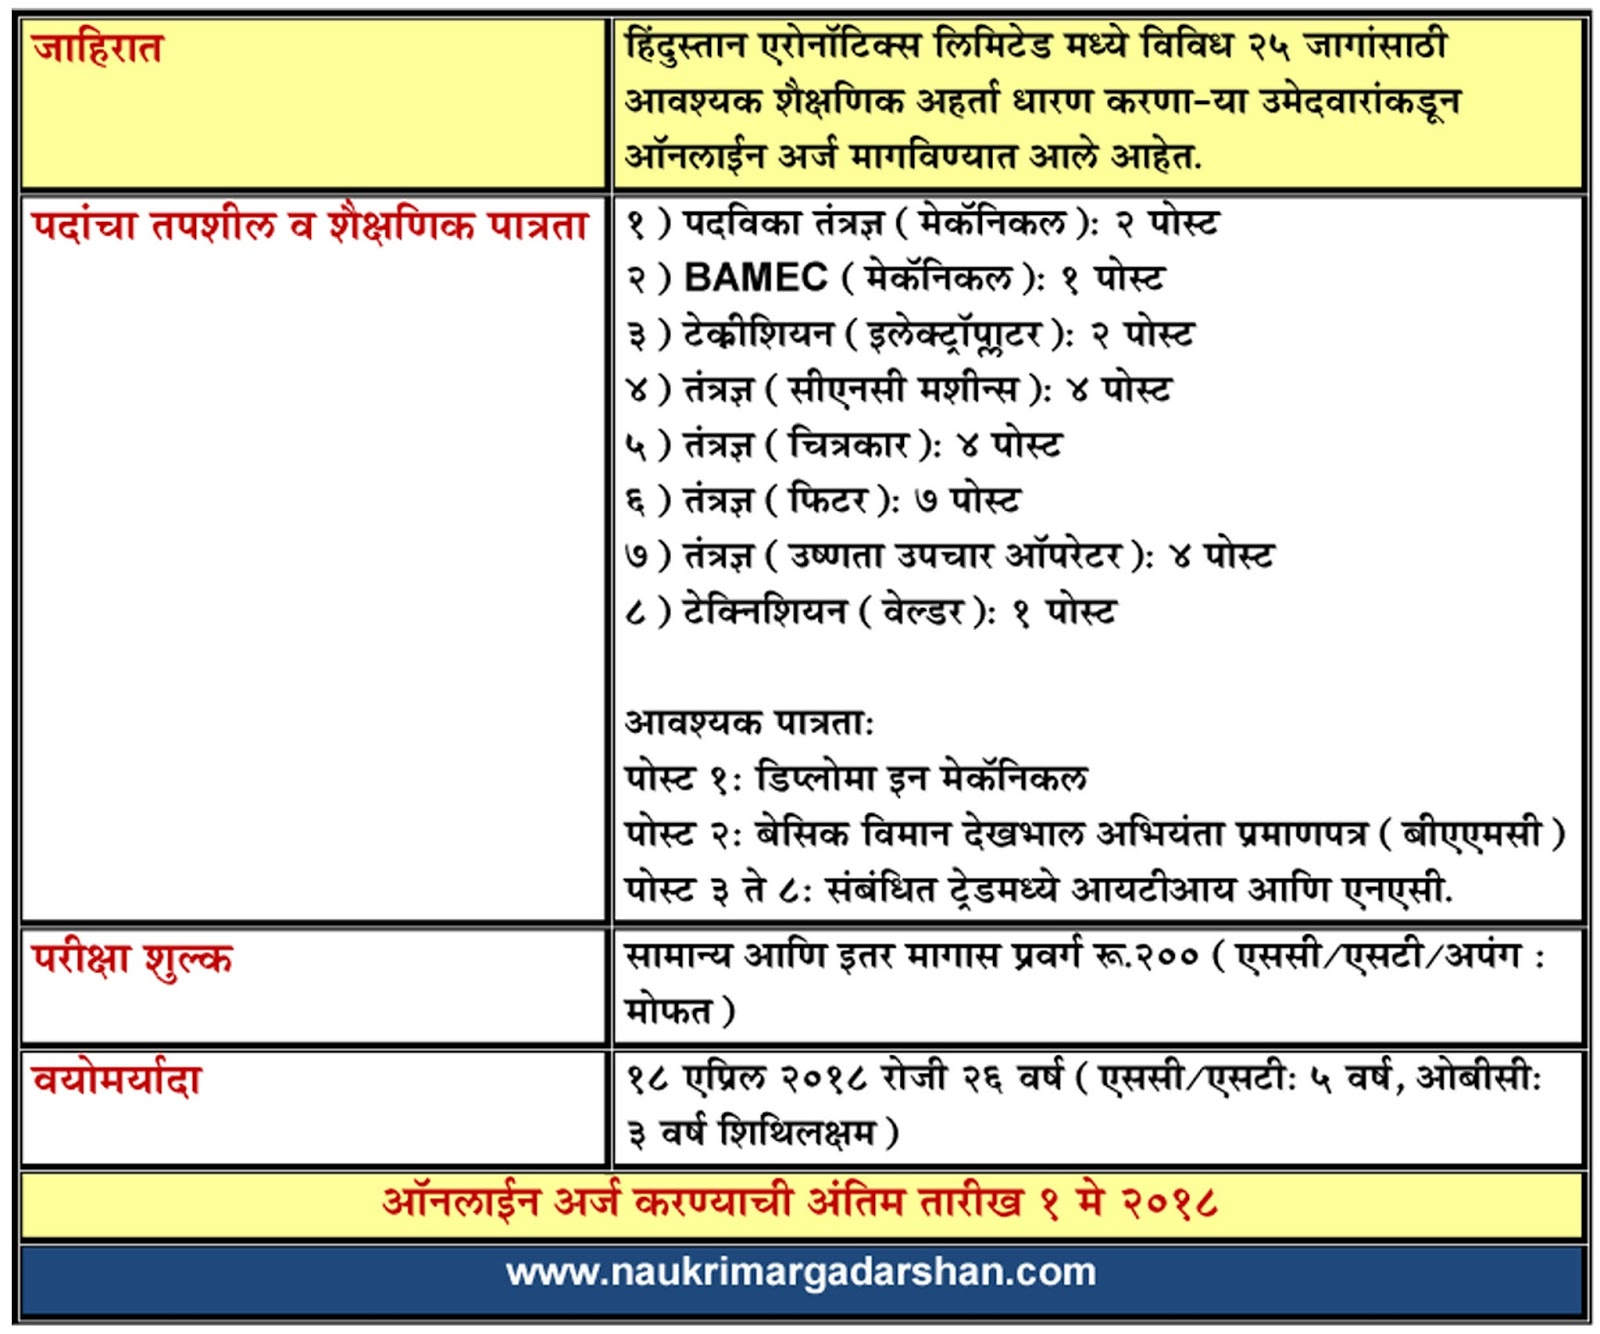 government jobs, sarkari naukri, naukri margadarshan